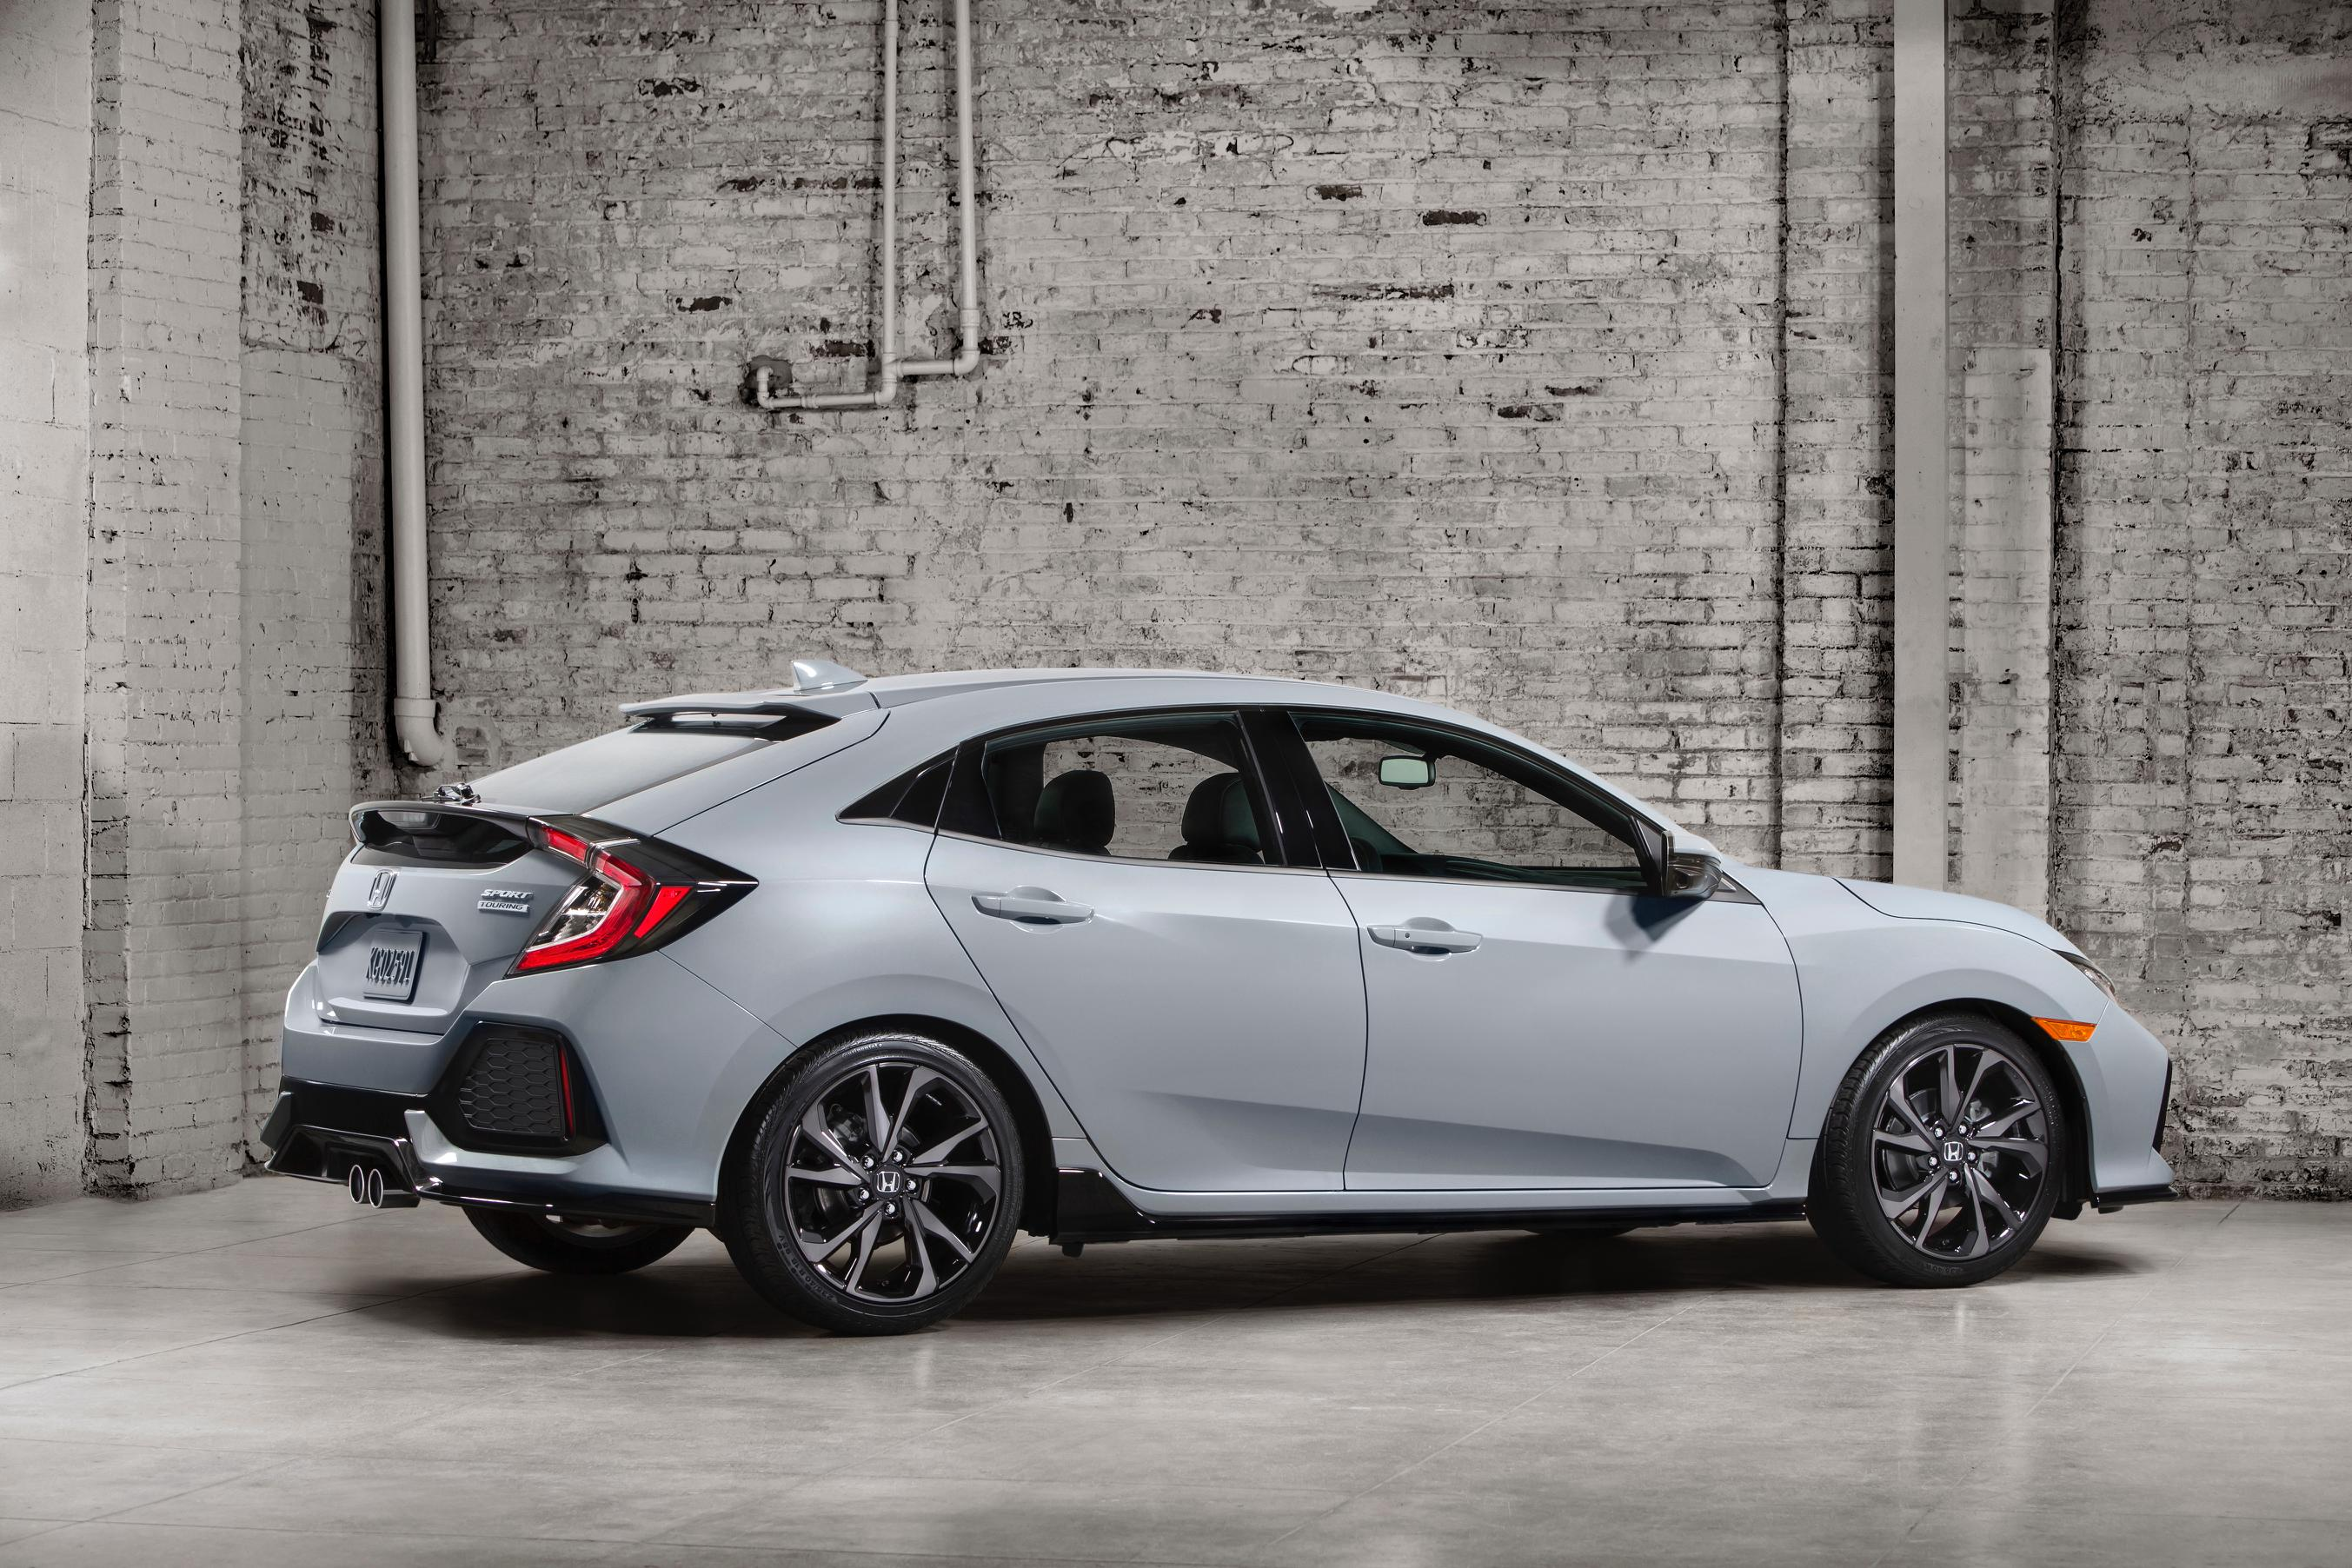 2017 Honda Civic Hatchback | The News Wheel